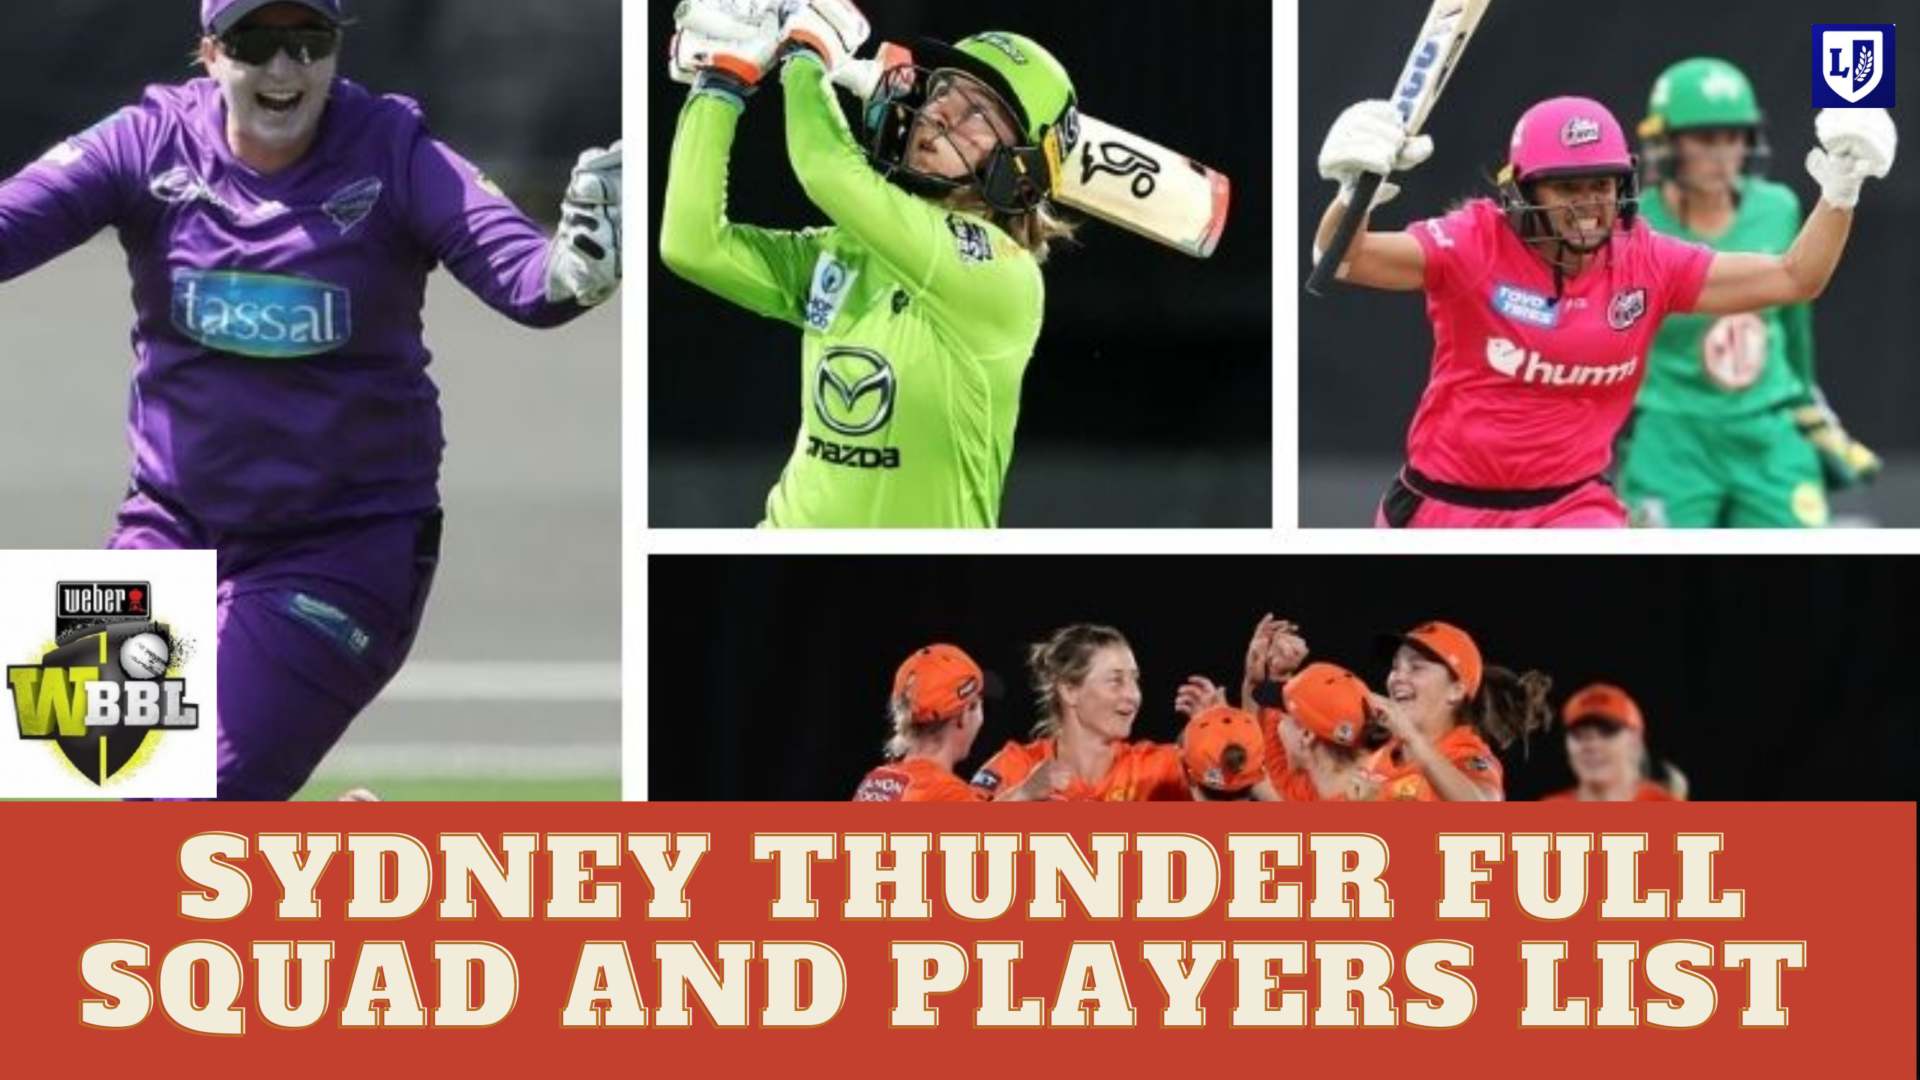 Sydney Thunder Full Squad and Players List